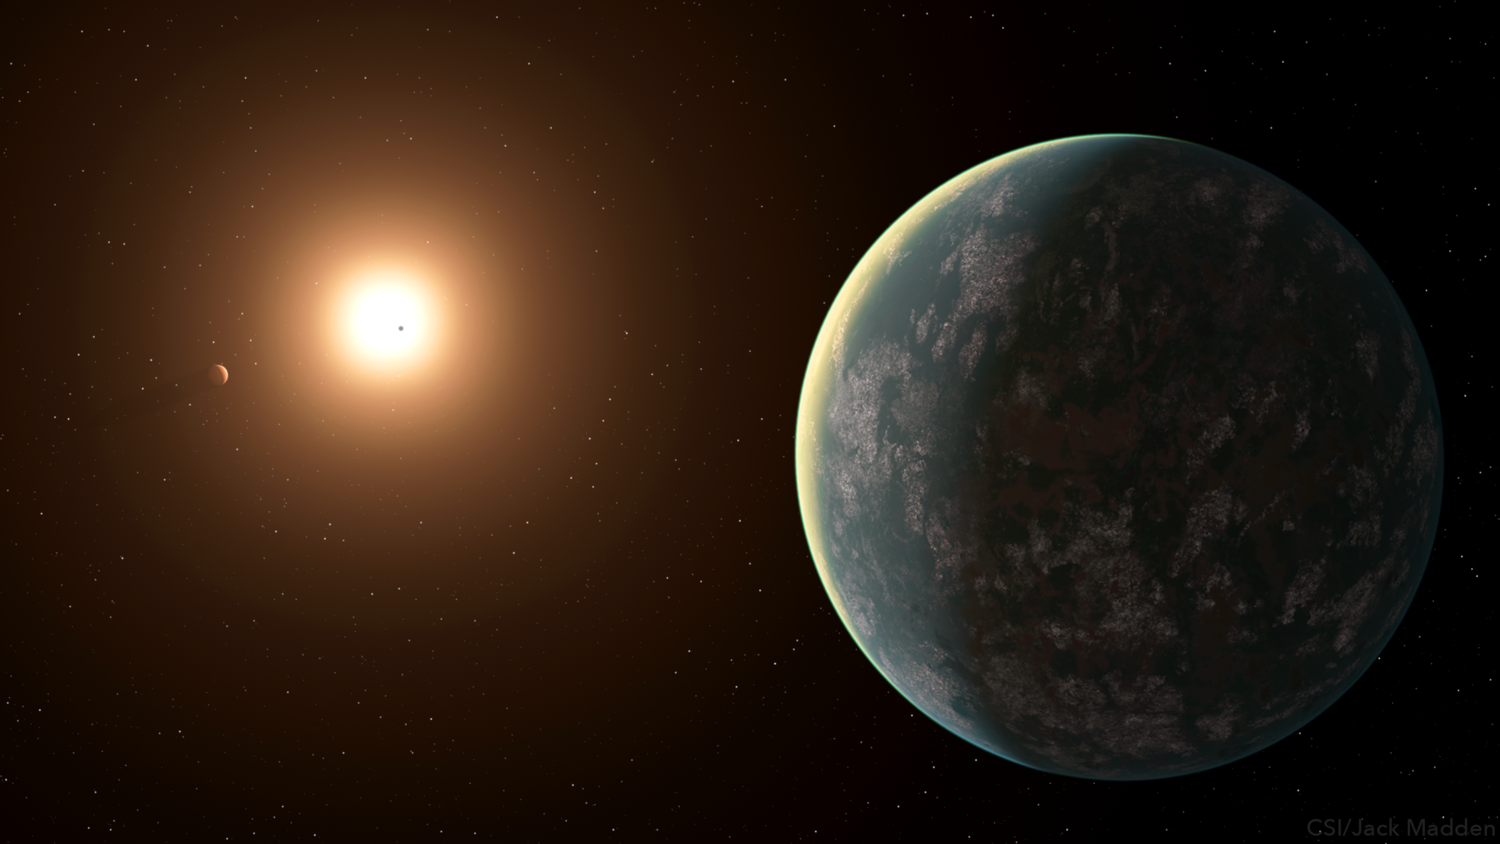 Artistic representation of the planetary system of GJ 357.